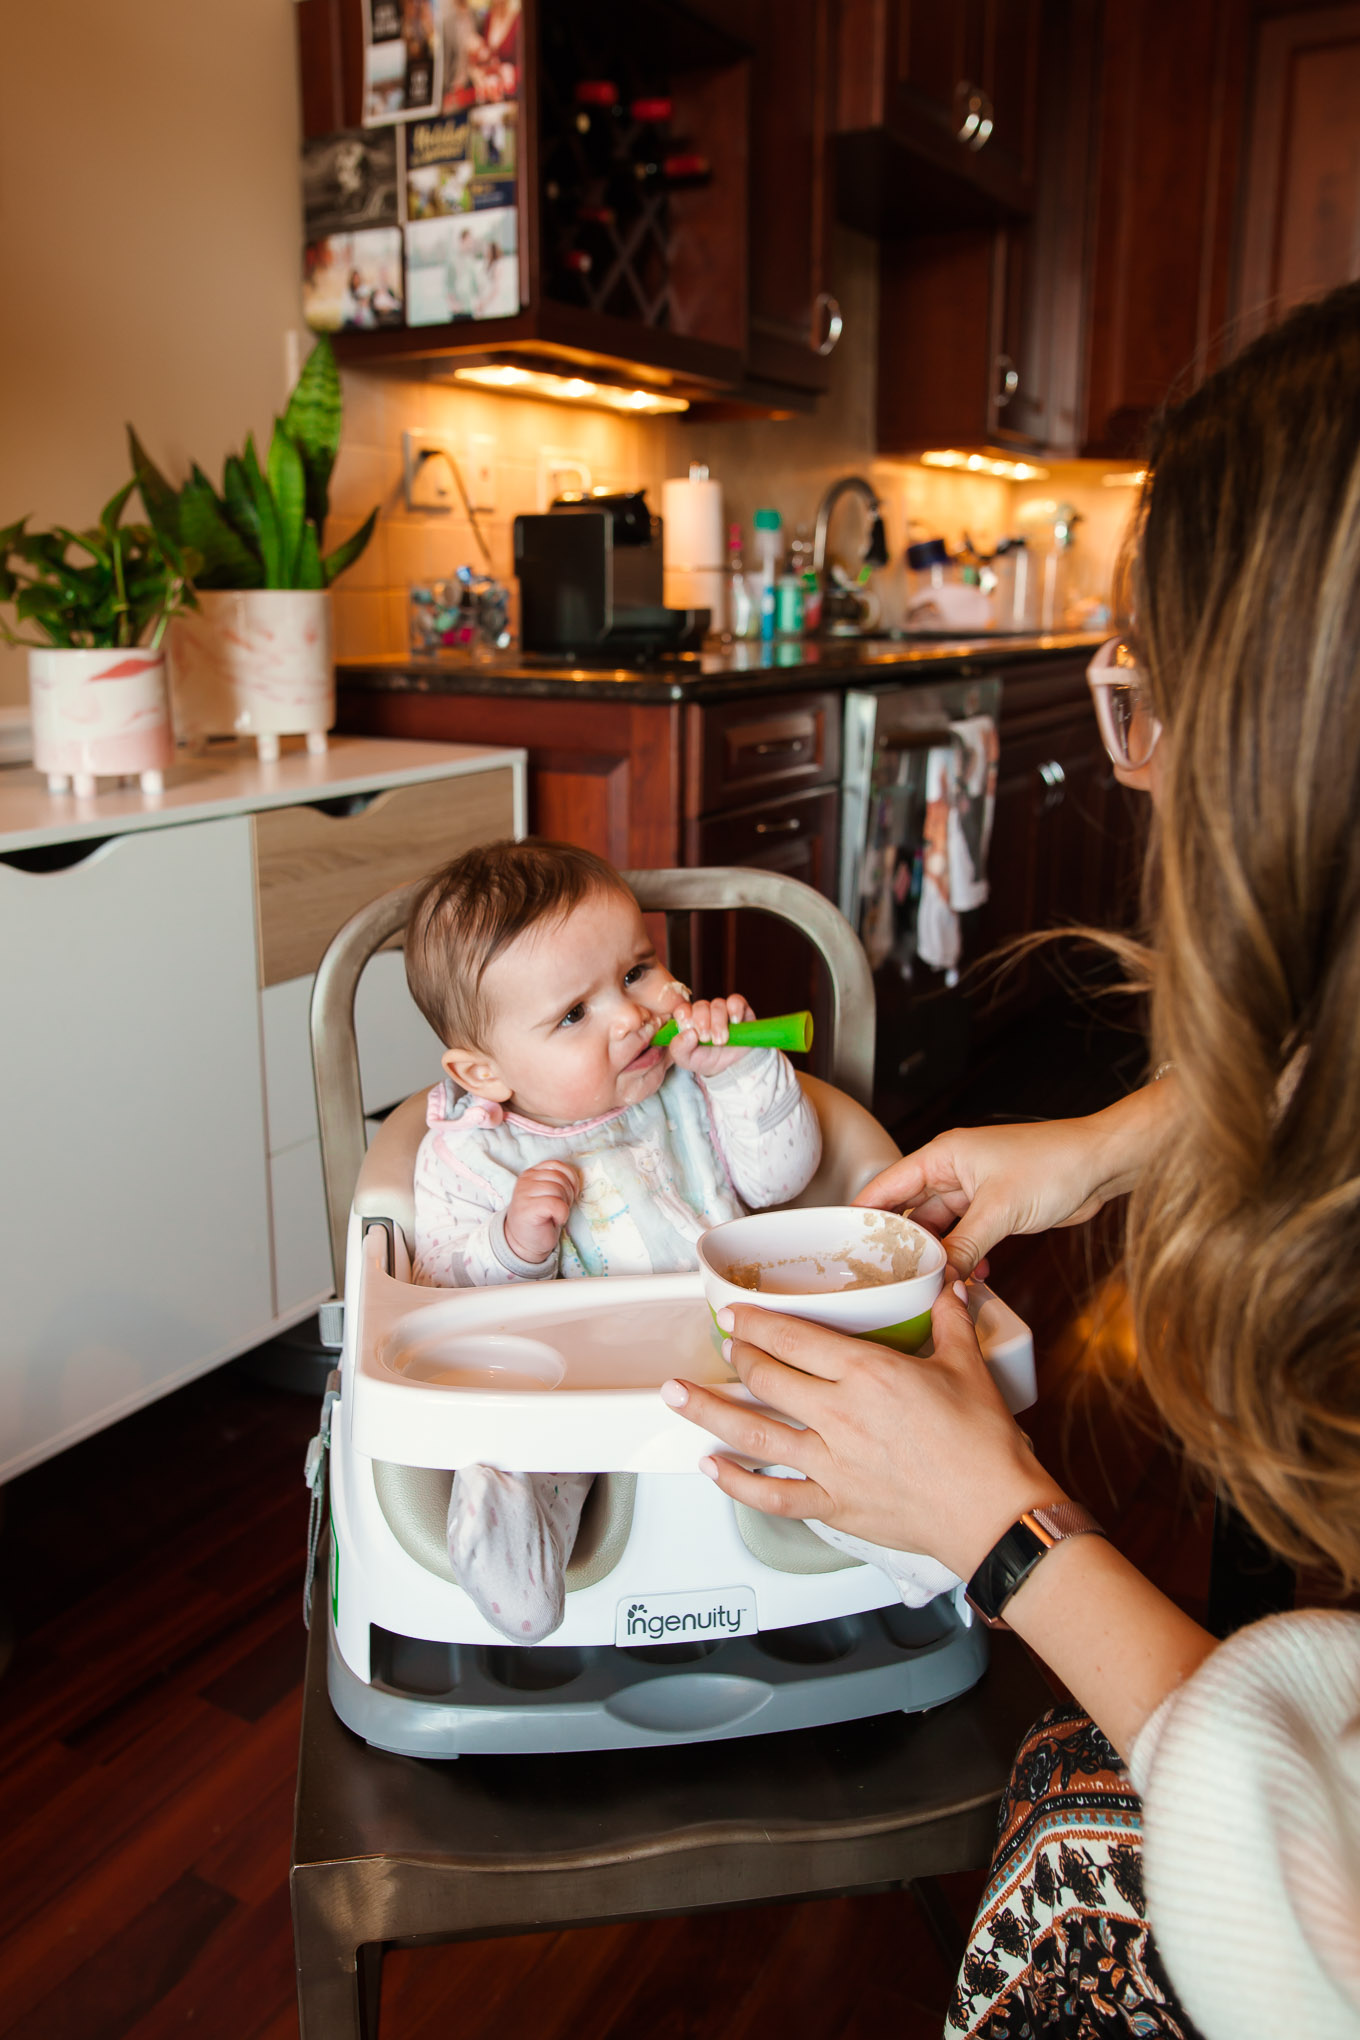 Ingenuity Baby Seat by popular Chicago mommy blog, Glass of Glam: image of a baby sitting in a Ingenuity baby seat.